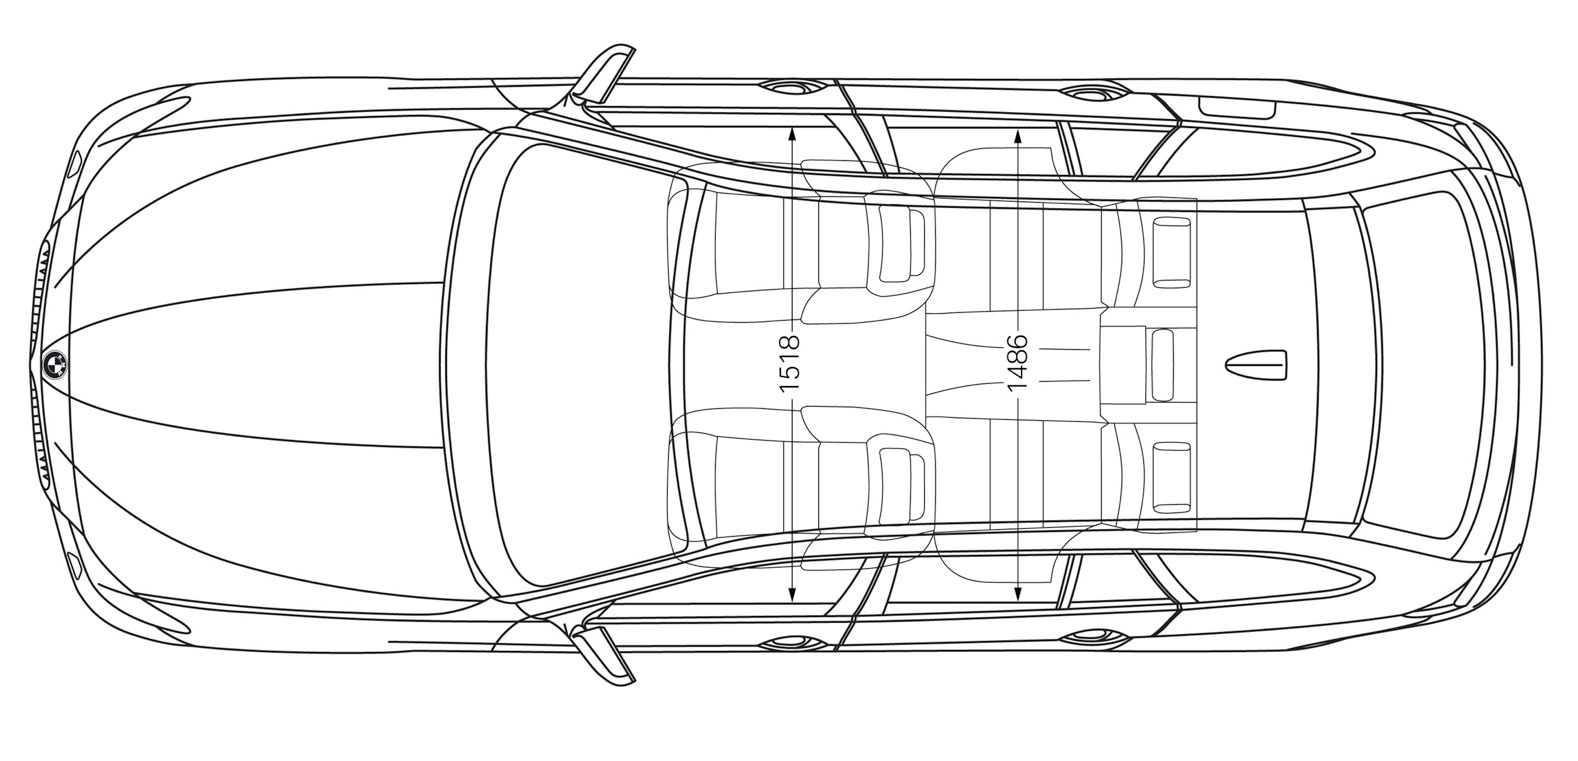 Car Drawing Top View